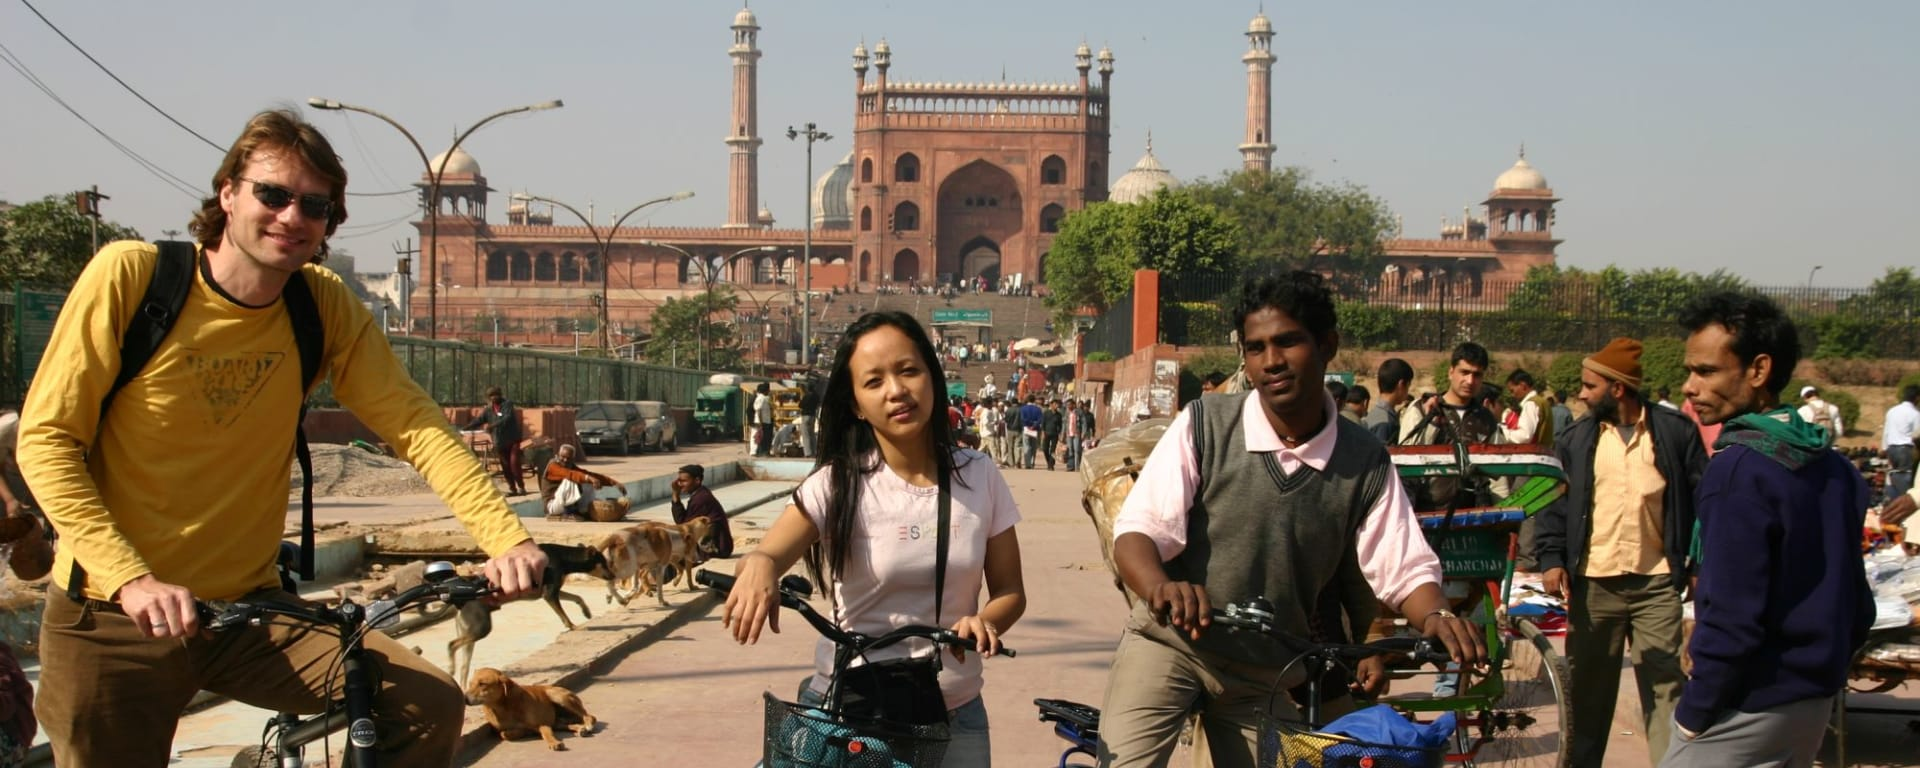 Velotour in Old Delhi: Bycycle Tour Delhi